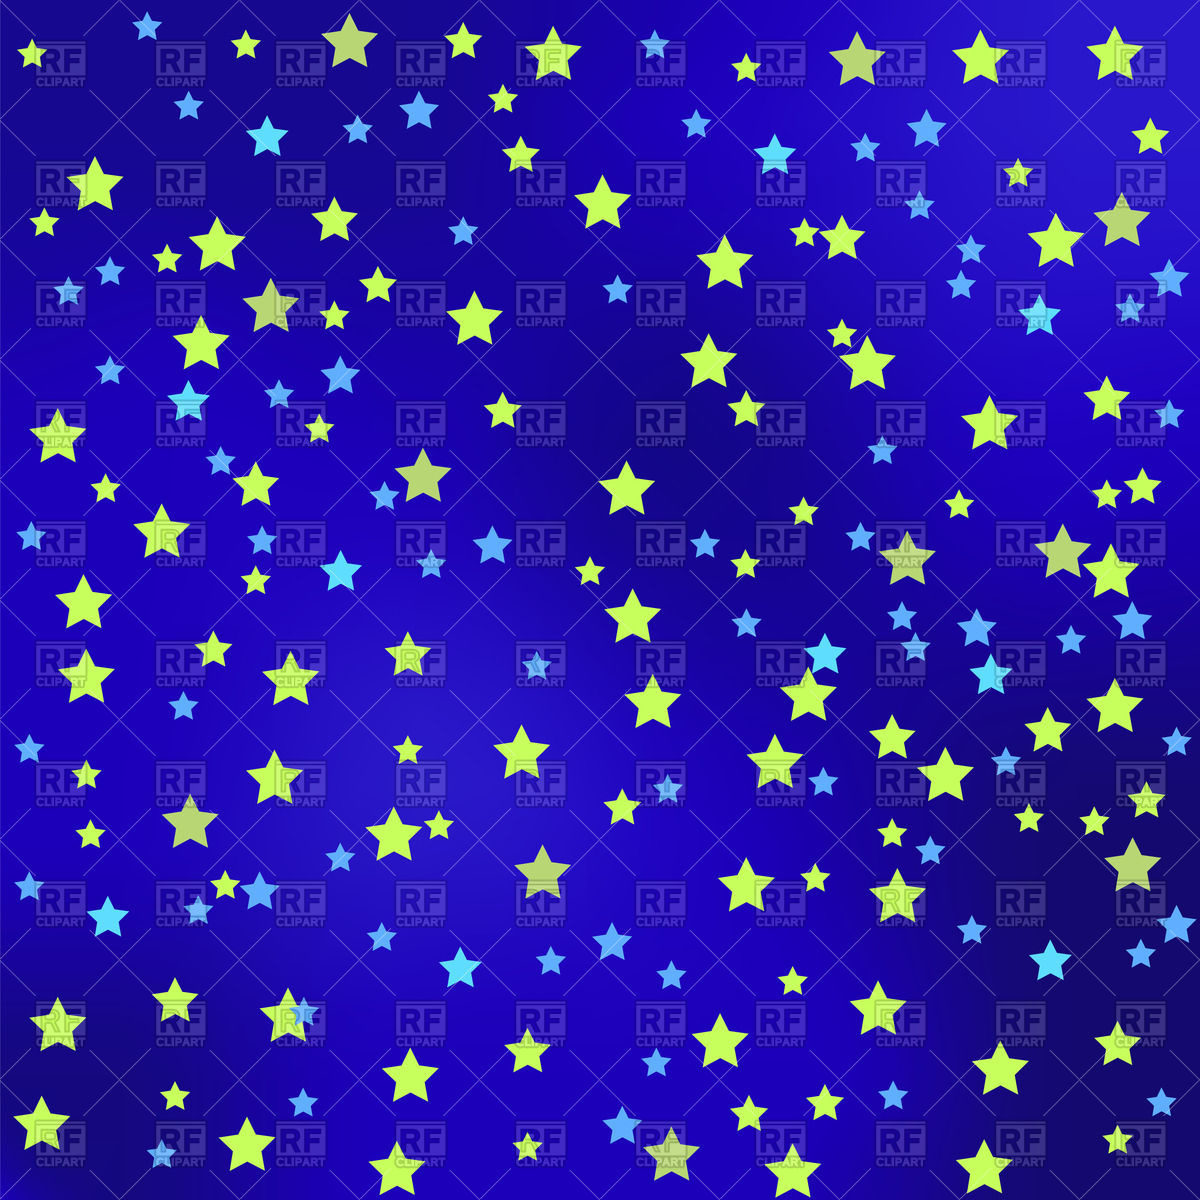 Free starry night clipart.